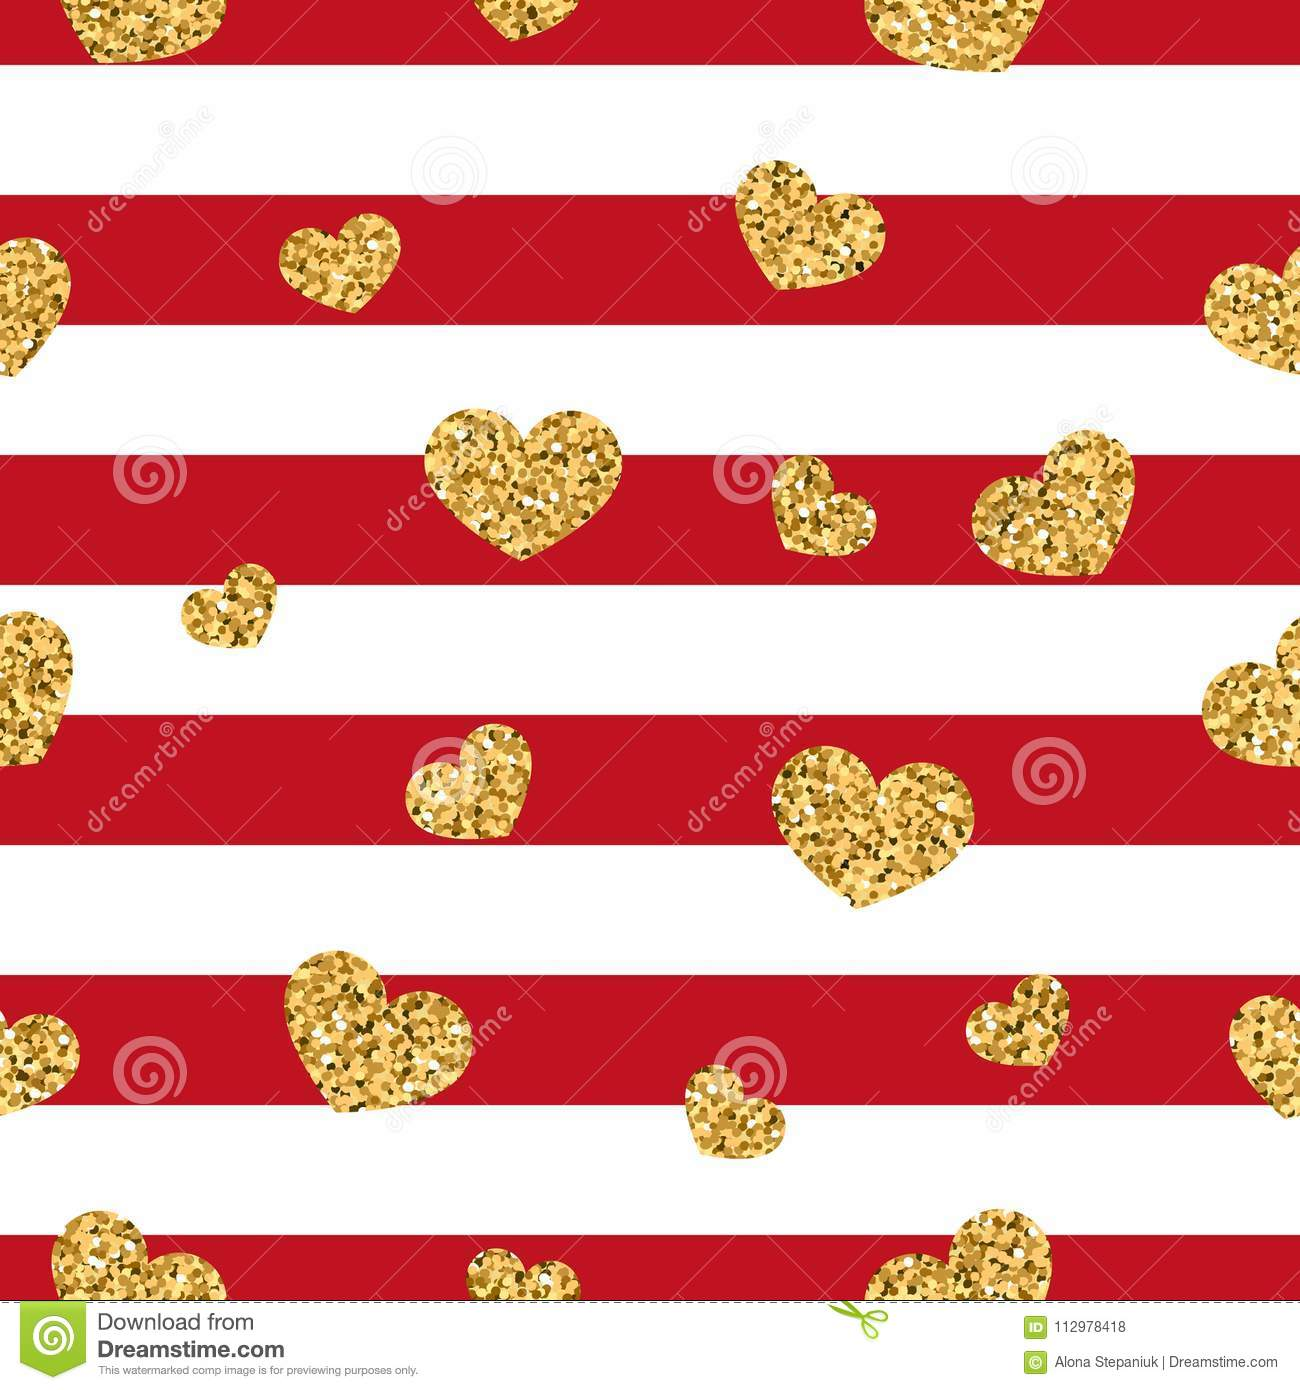 Gold heart seamless pattern. Red-white geometric stripes, golden confetti-hearts. Symbol of love, Valentine day holiday